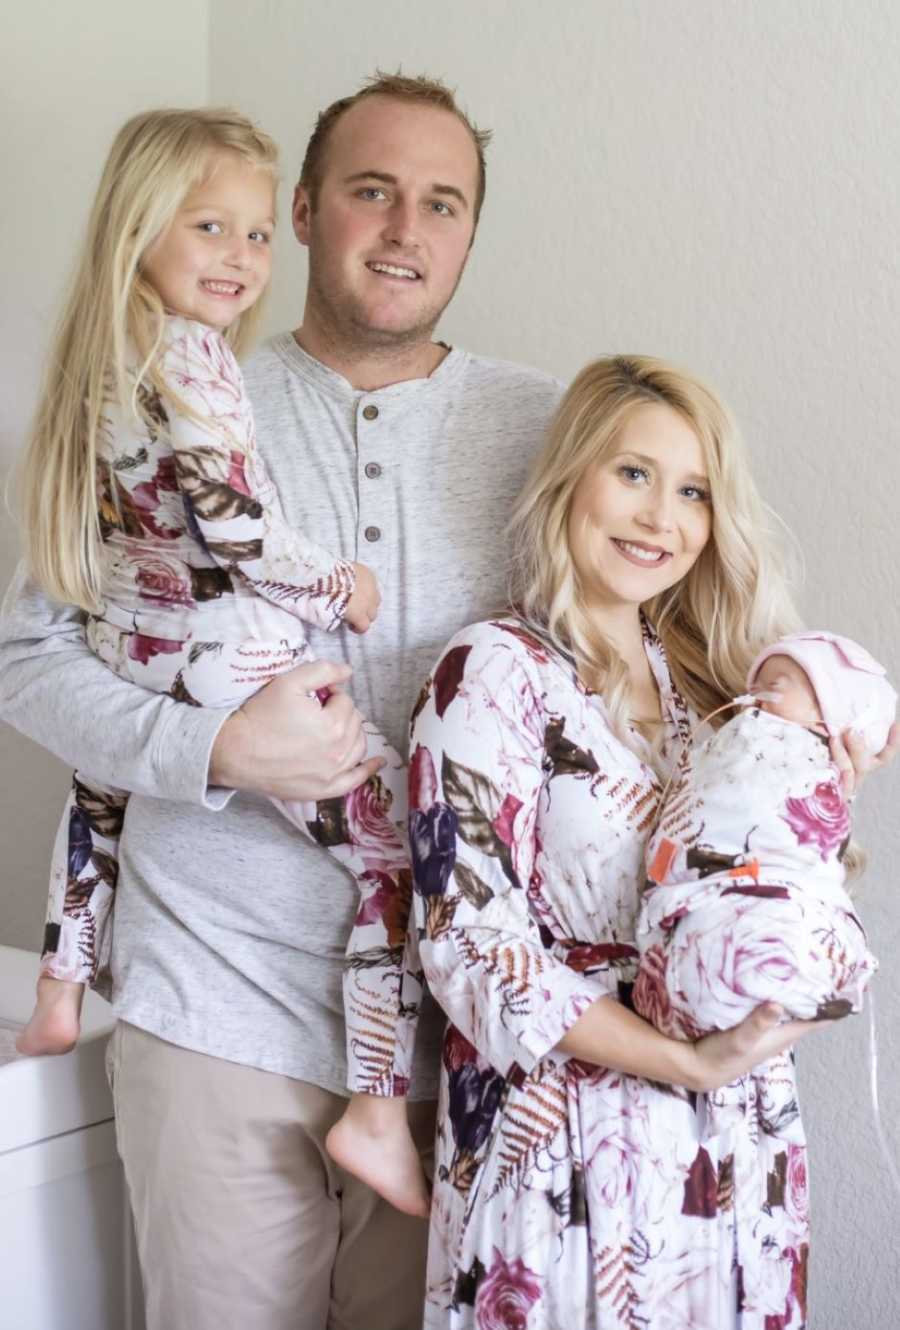 Family of four take photos in matching outfits to celebrate the life of their newborn baby girl